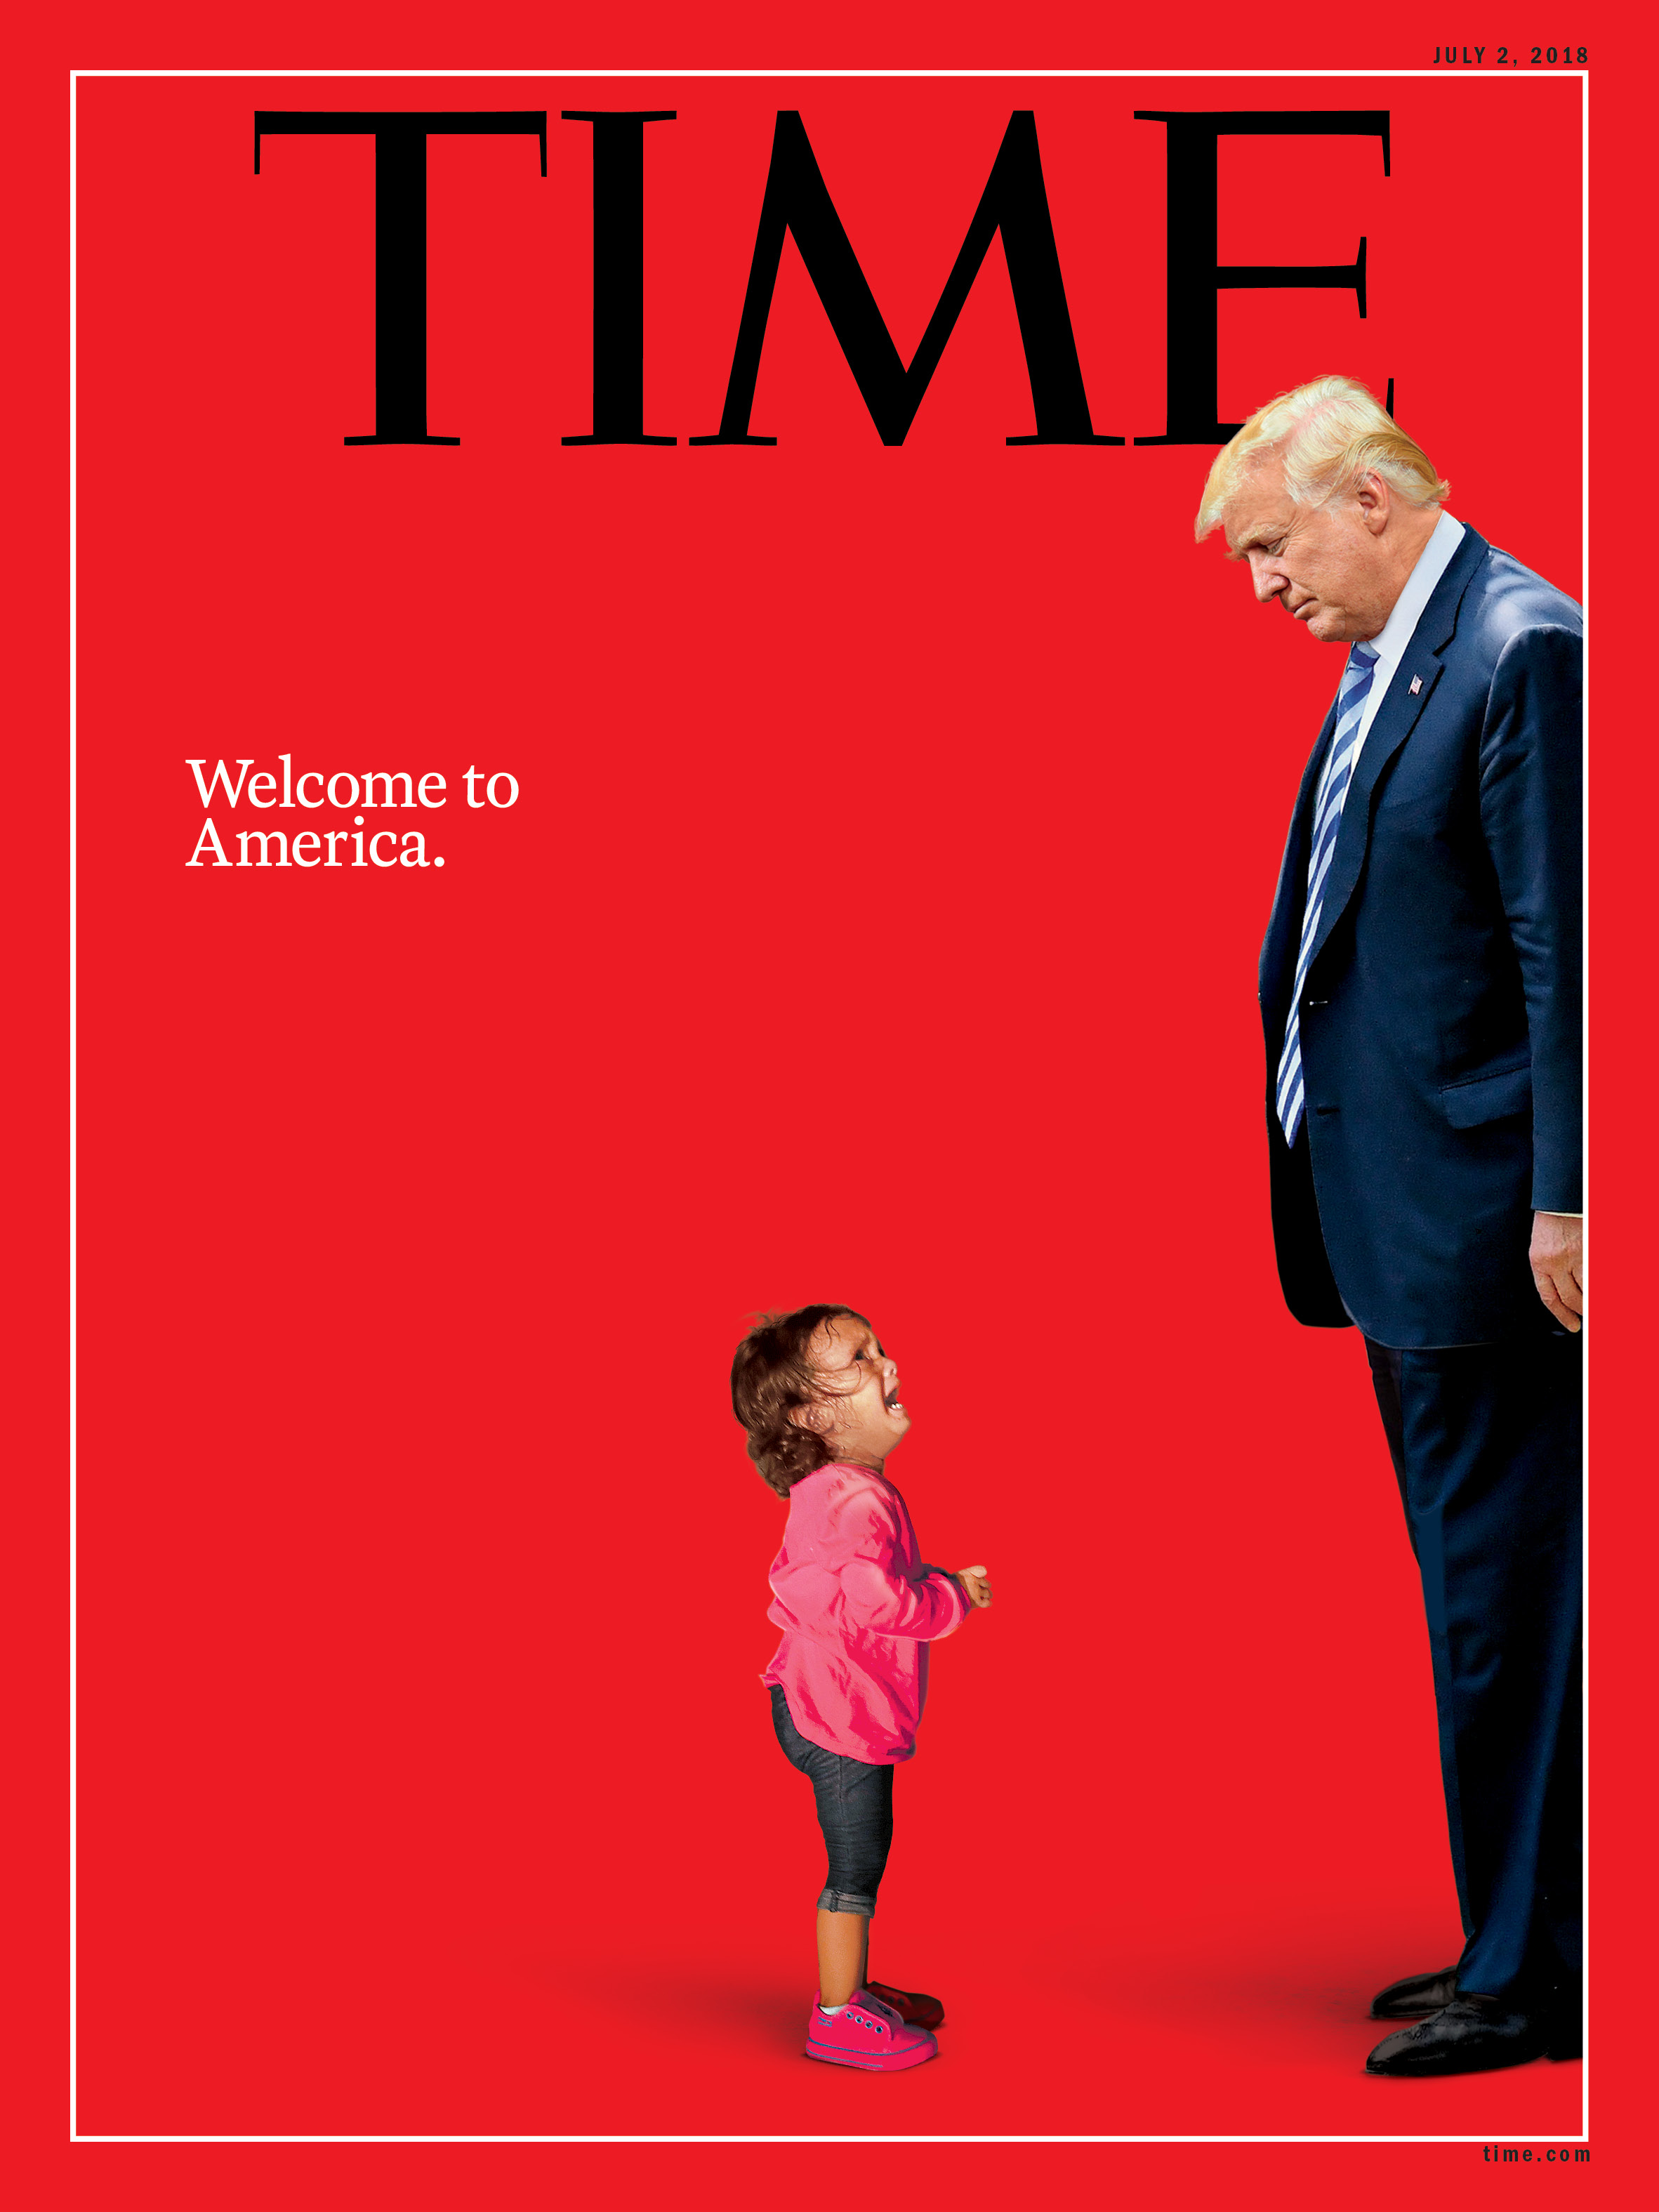 TIME Magazine cover is false